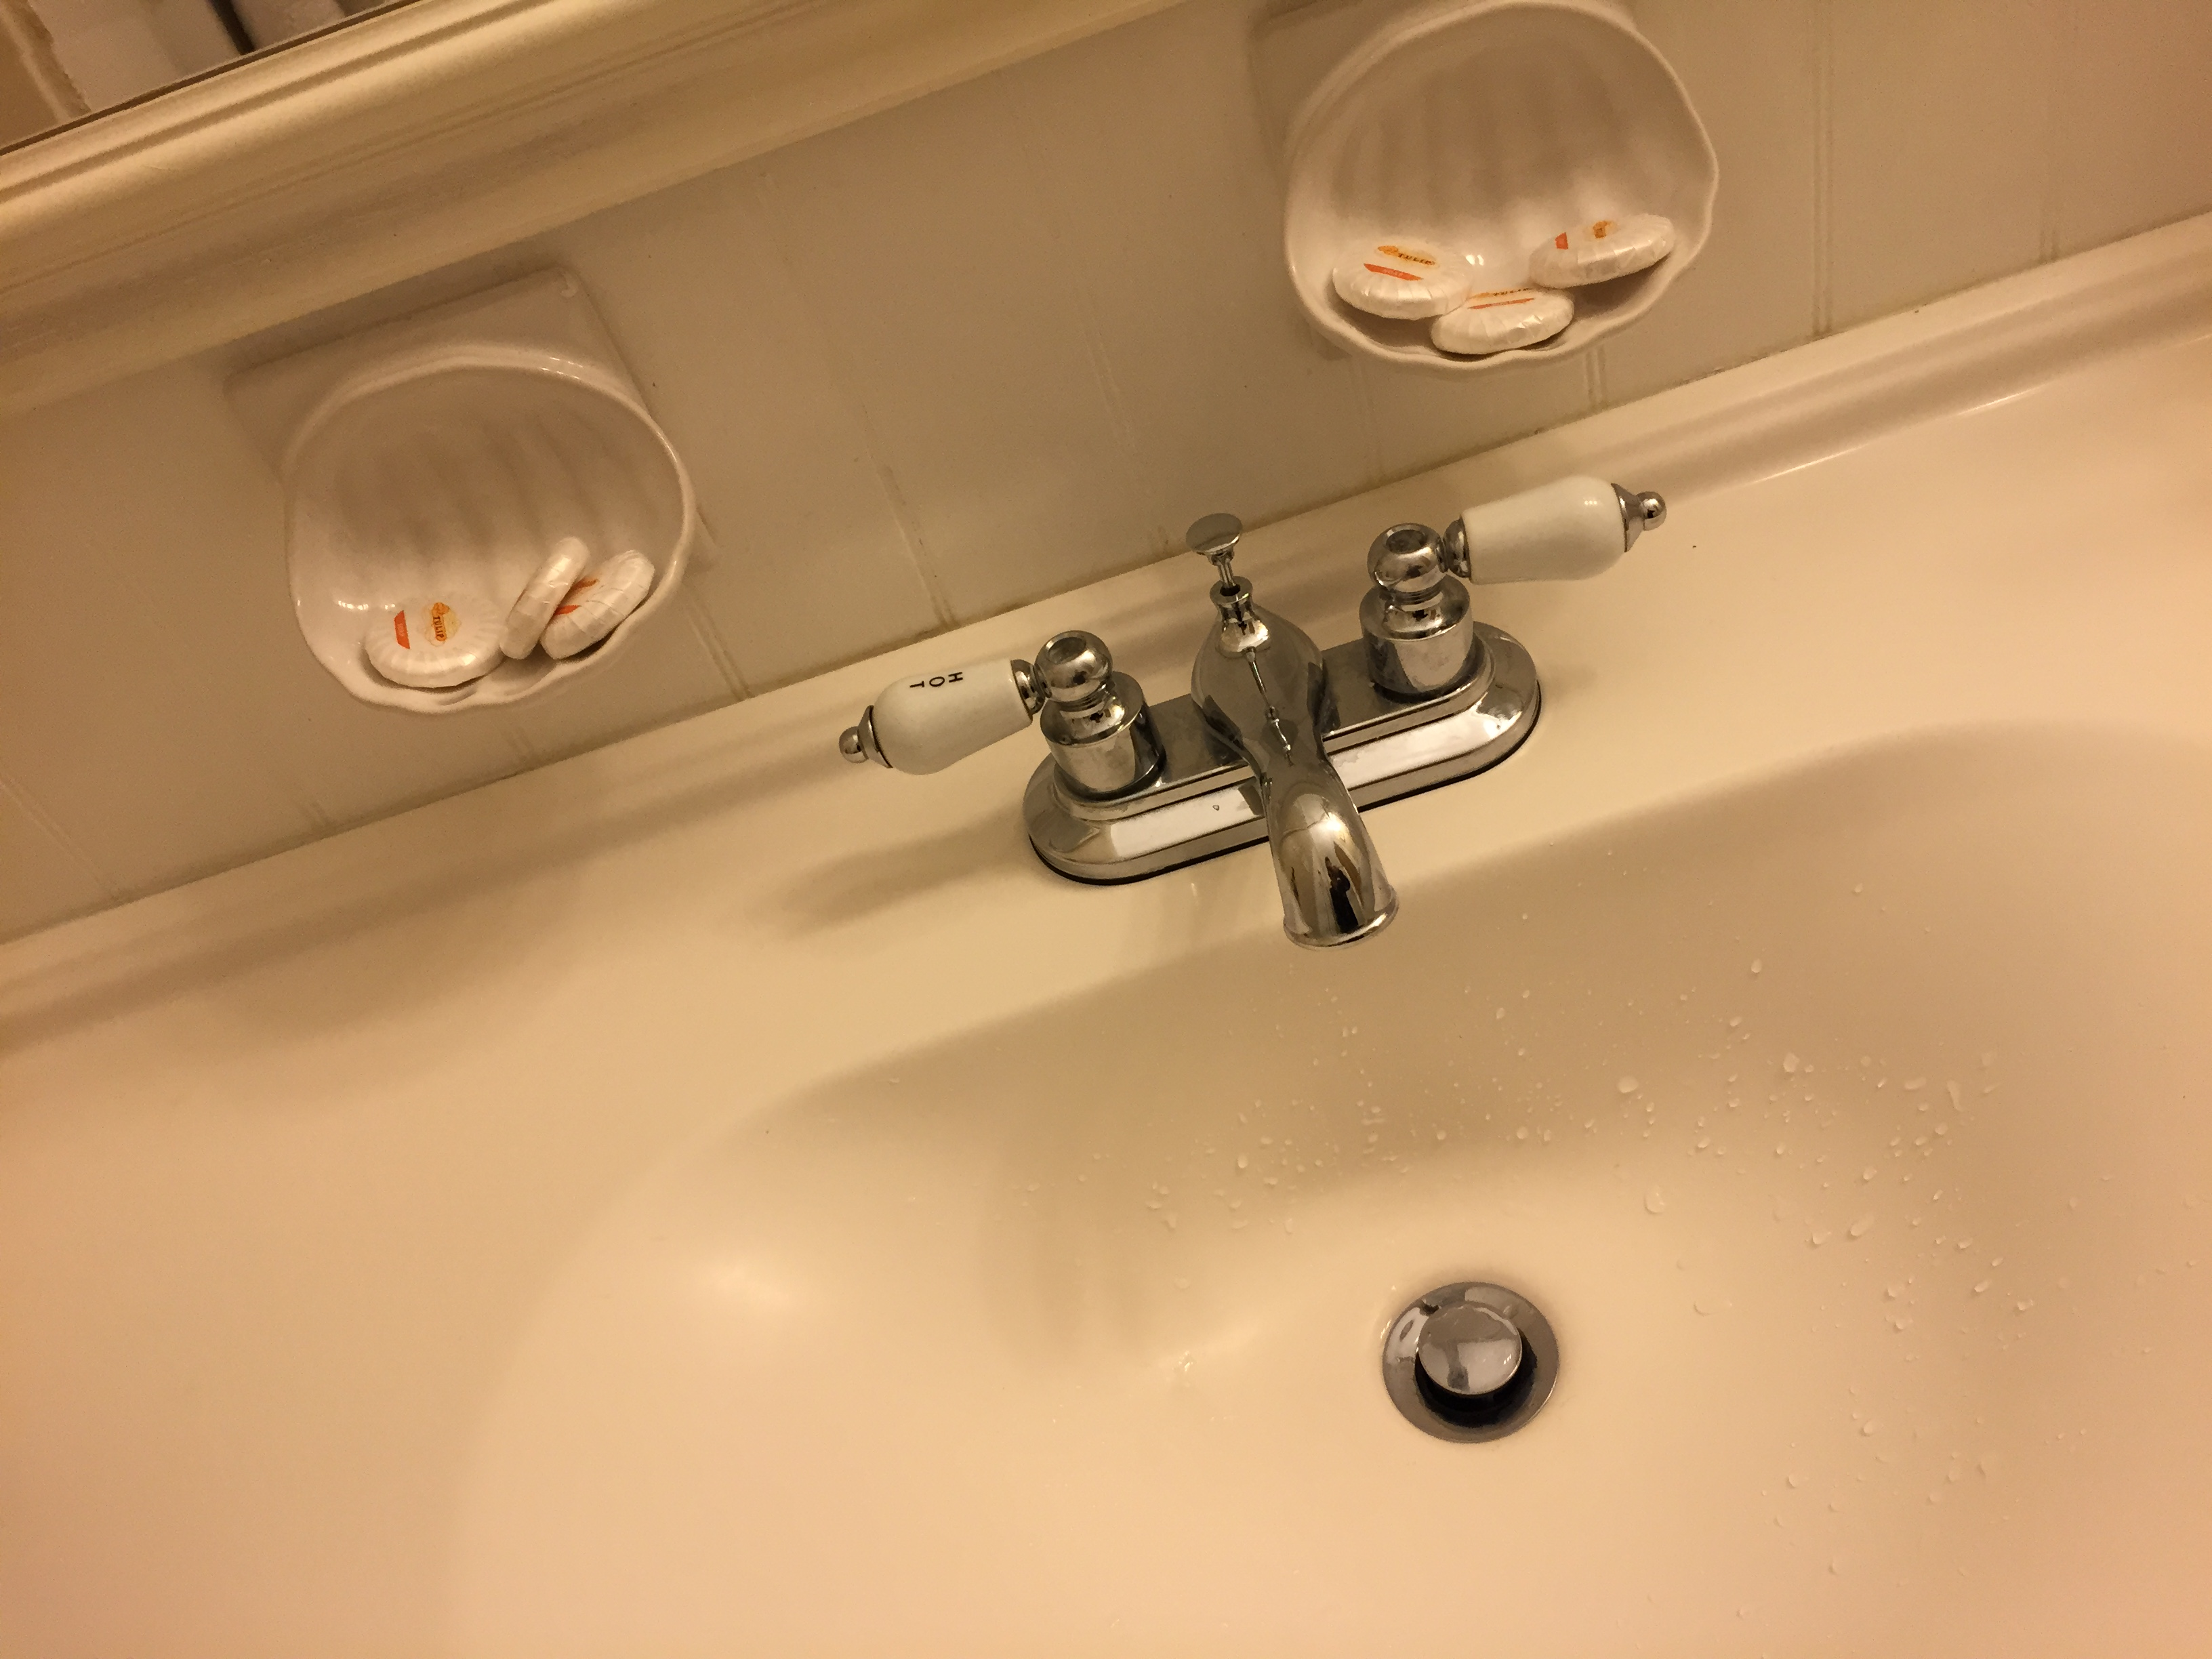 Sink with analogue faucet